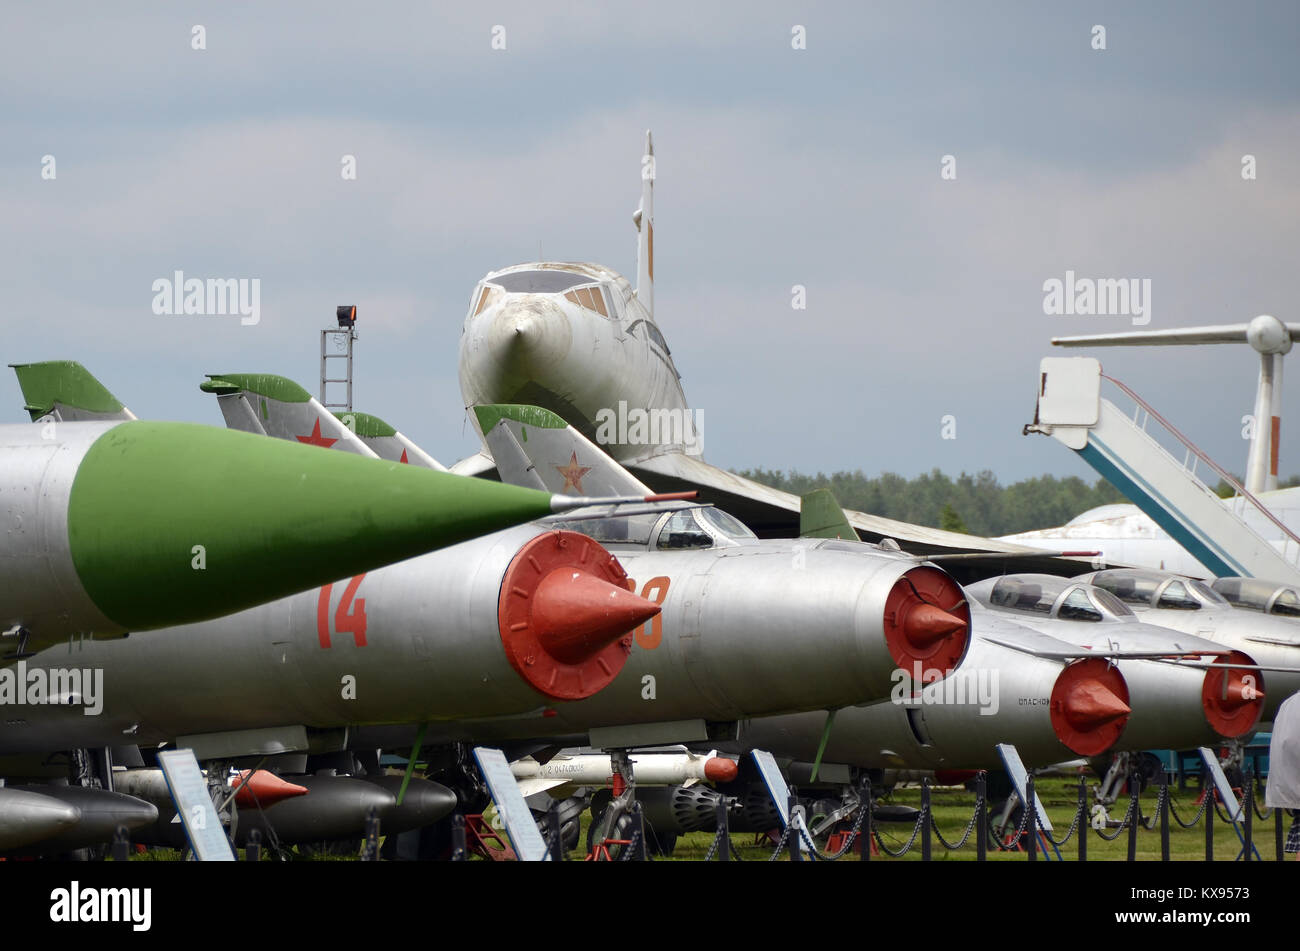 A collection of Sukhoi fighters before the Tupolev Tu-144 on display in Monino museum. - Stock Image